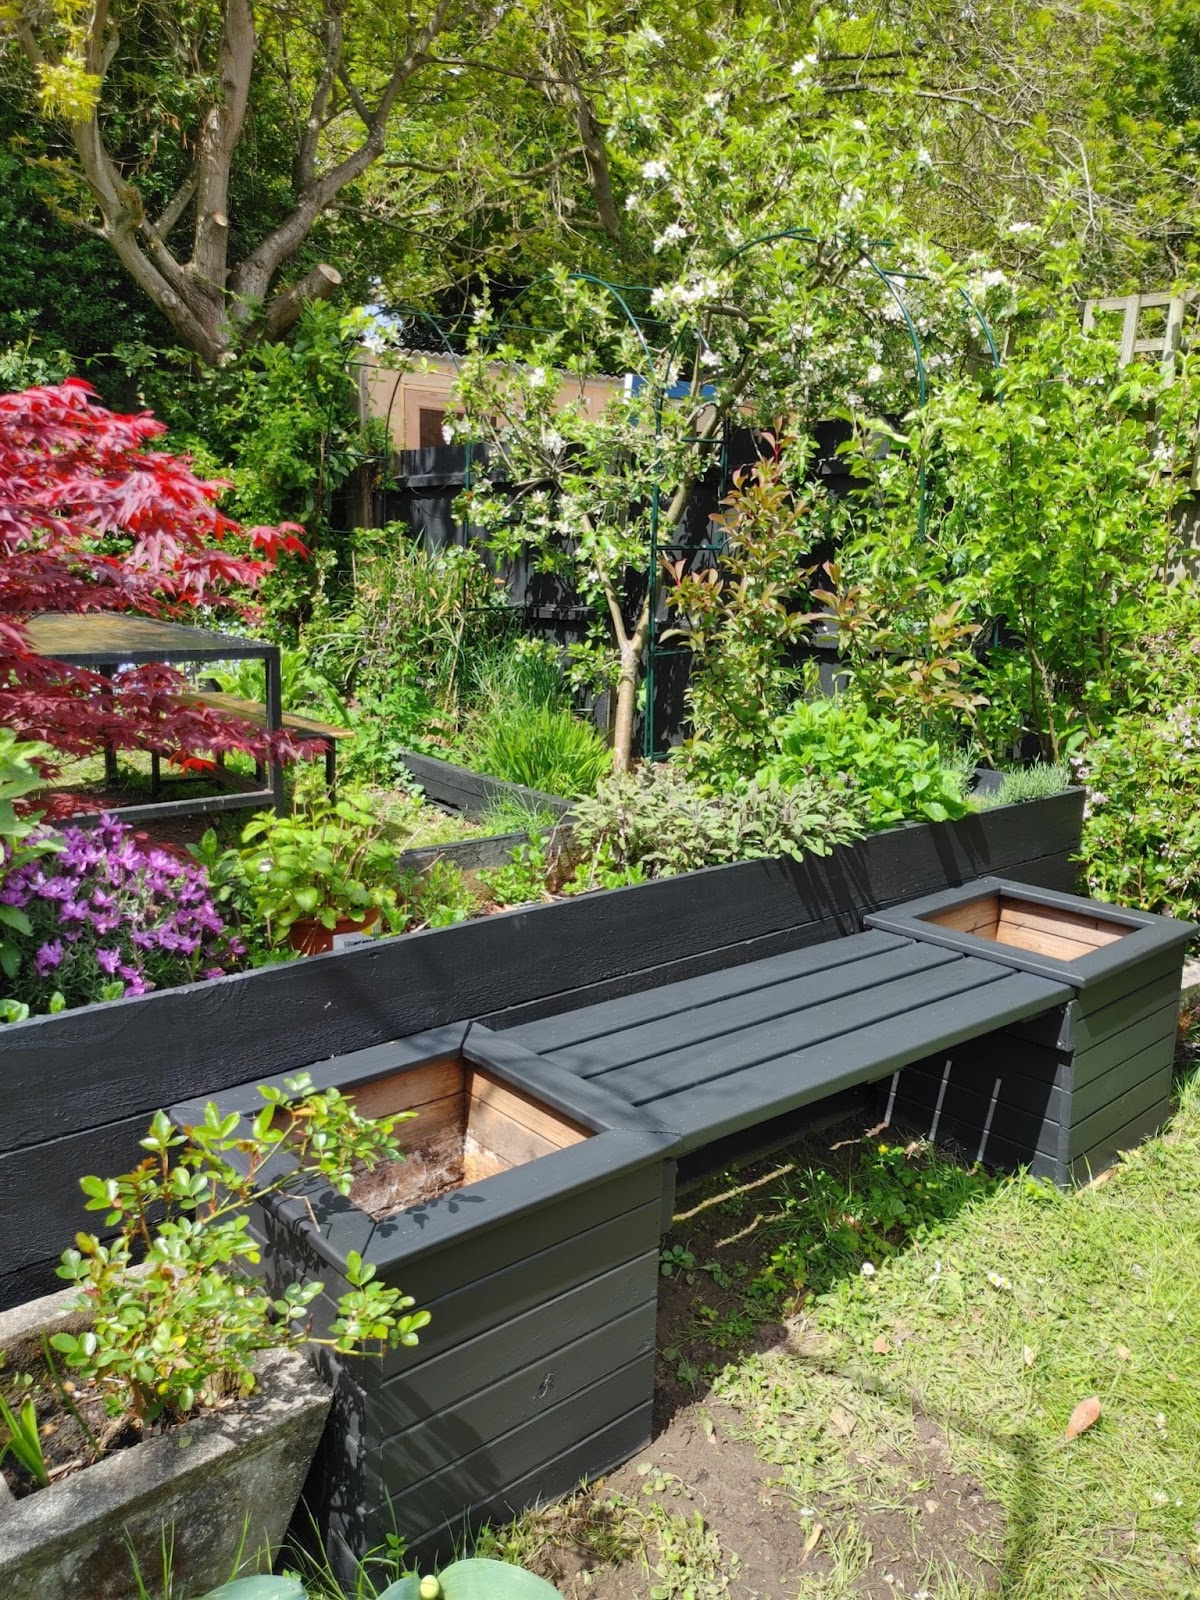 The bench is a key part to the garden makeover